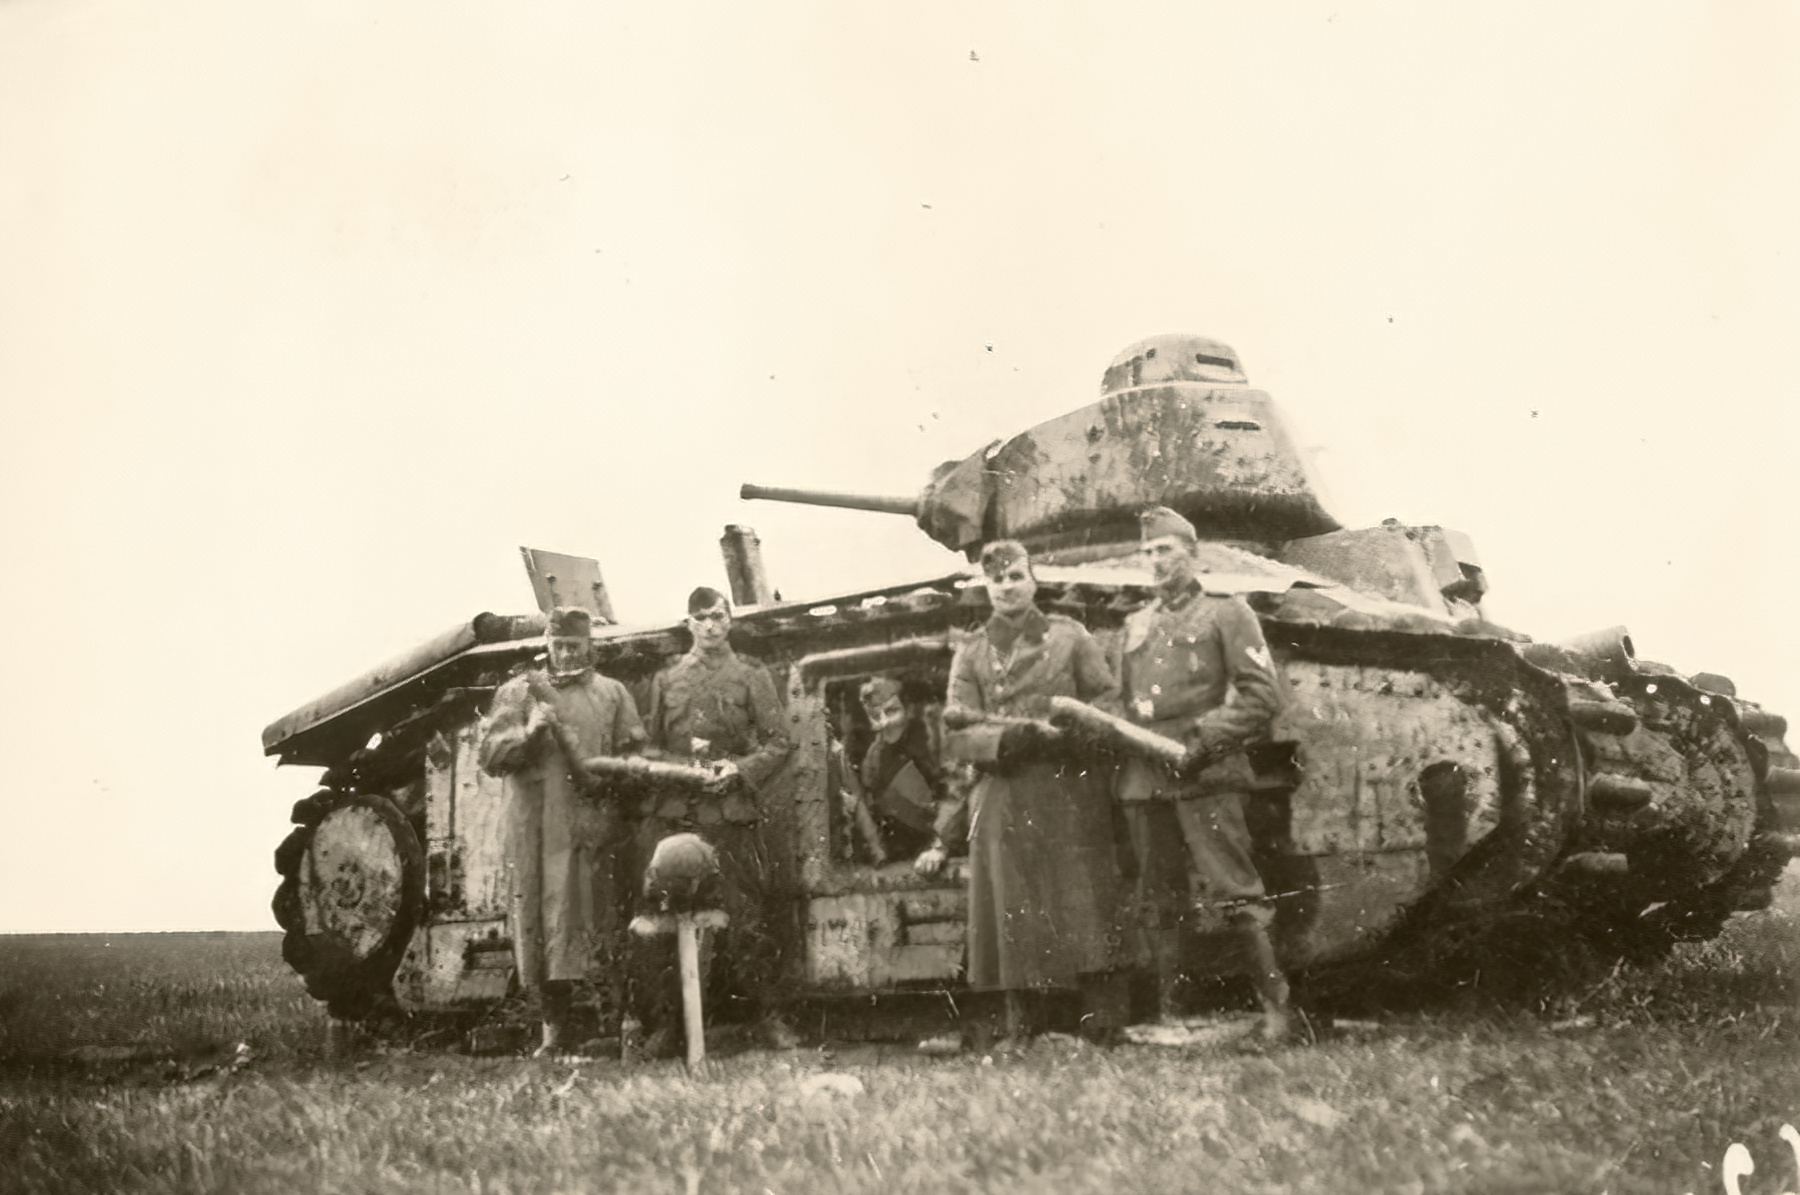 French Army Renault Char B1 being disarmed battle of France 1940 ebay 01